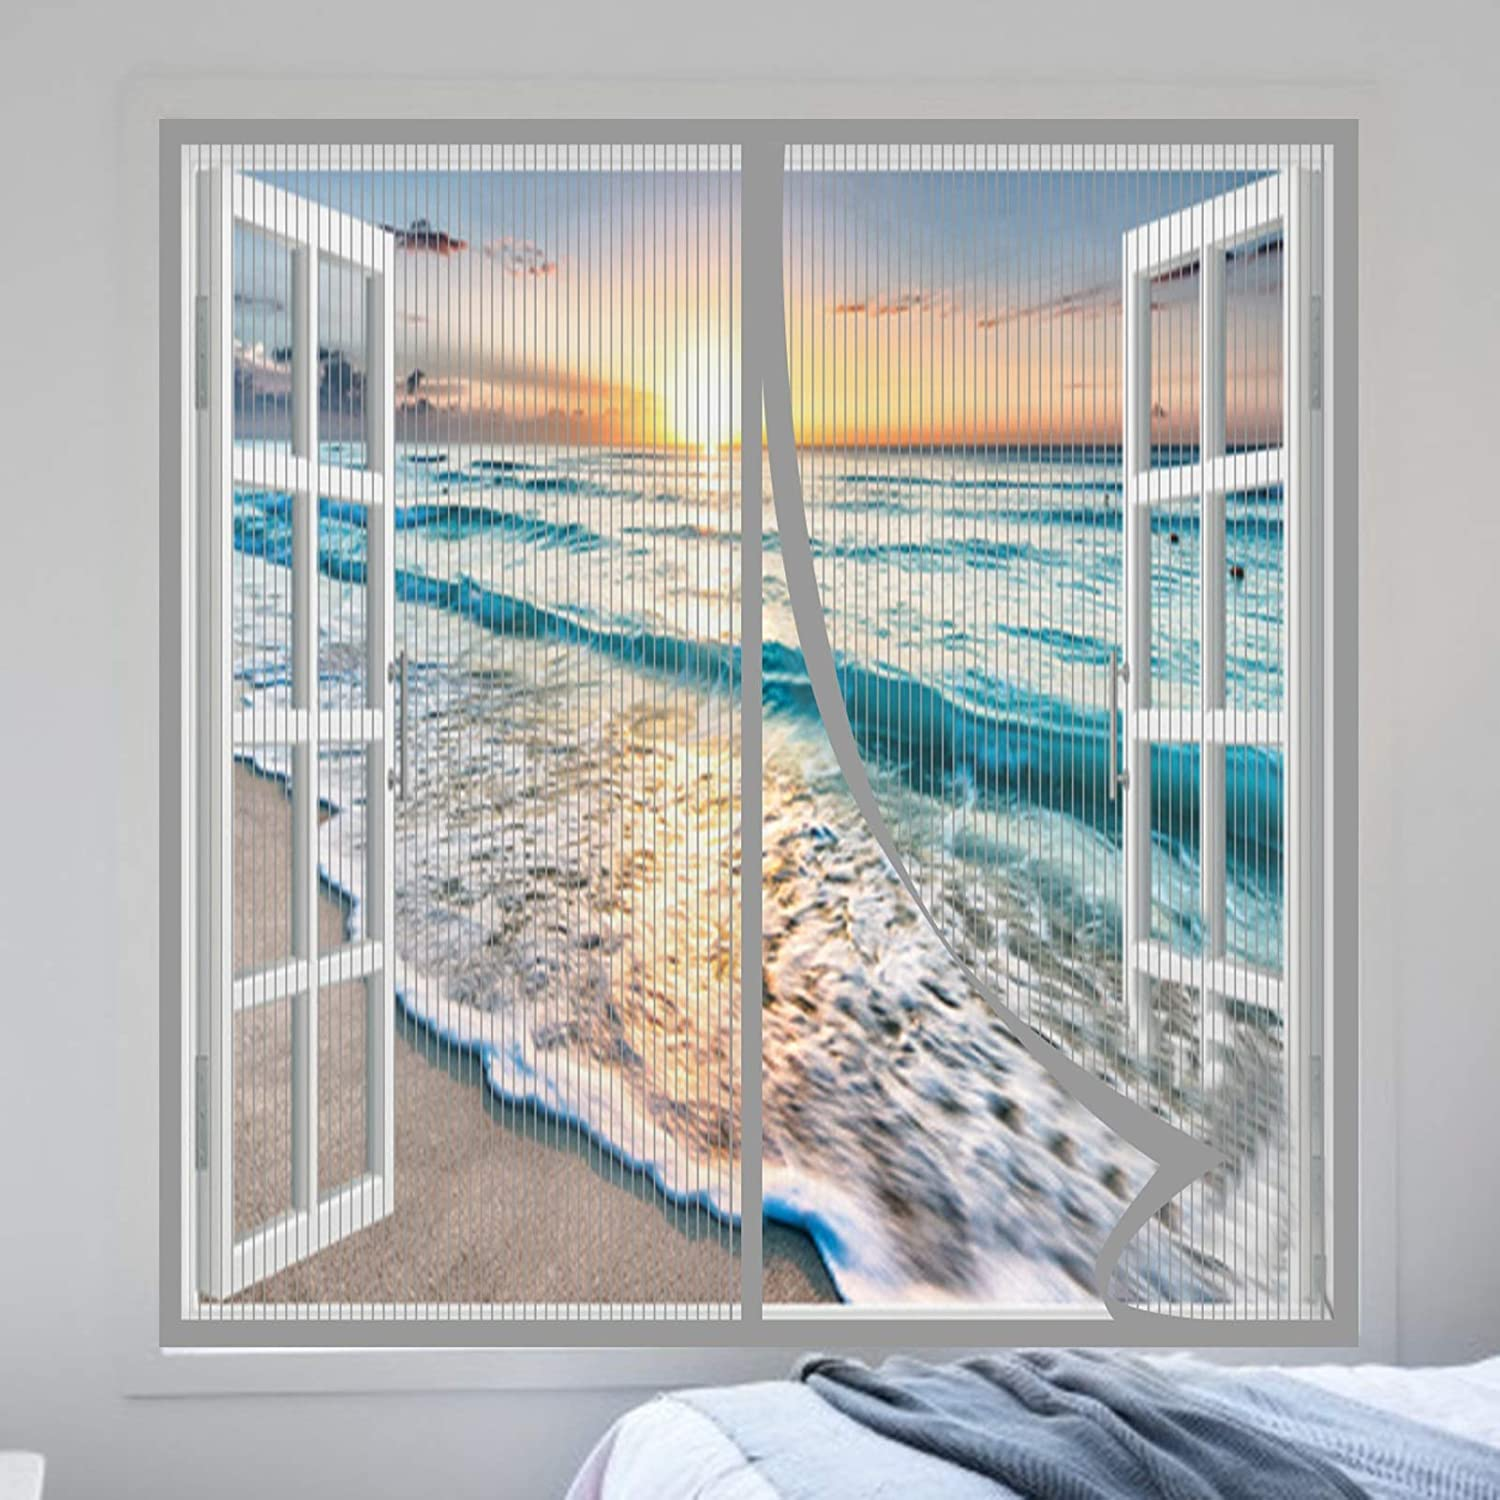 ! Super beauty product restock quality top! HAODELE Overseas parallel import regular item Fly Screen 100x120cm Closing Paste Curtains Magnets Stri